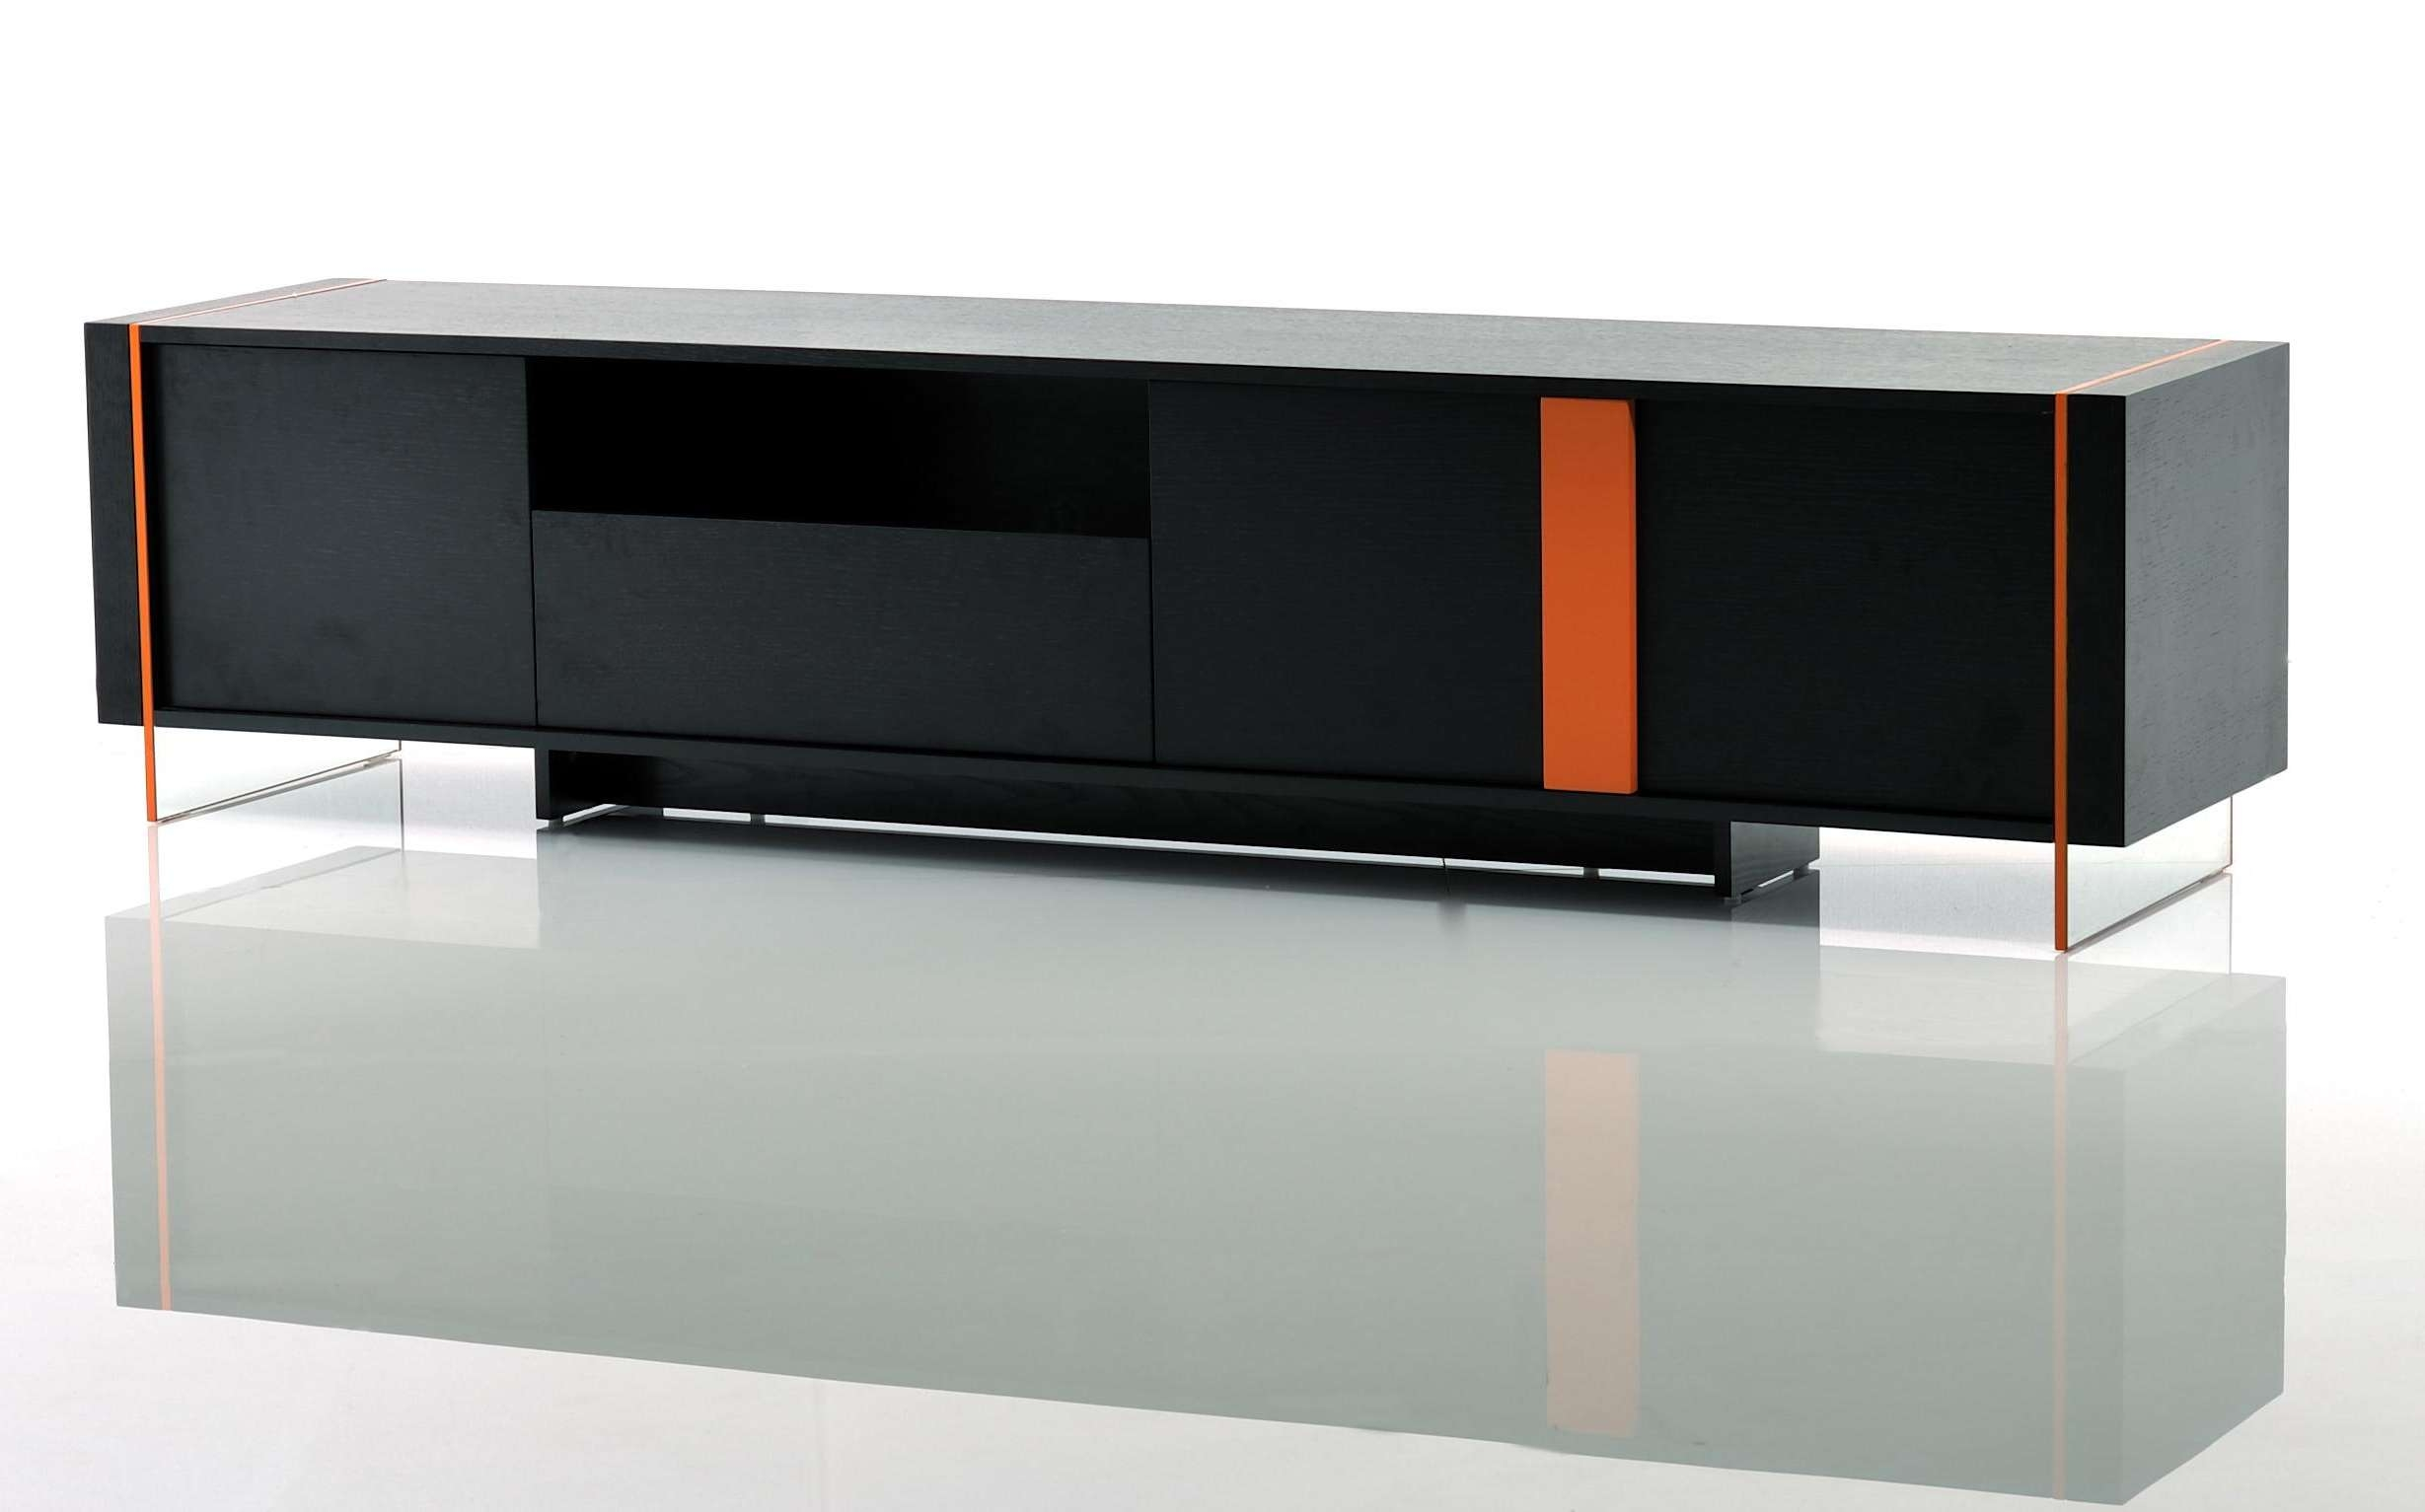 Contemporary Black Oak And Orange Floating Tv Stand Austin Texas Vvis With Contemporary Black Tv Stands (View 4 of 15)